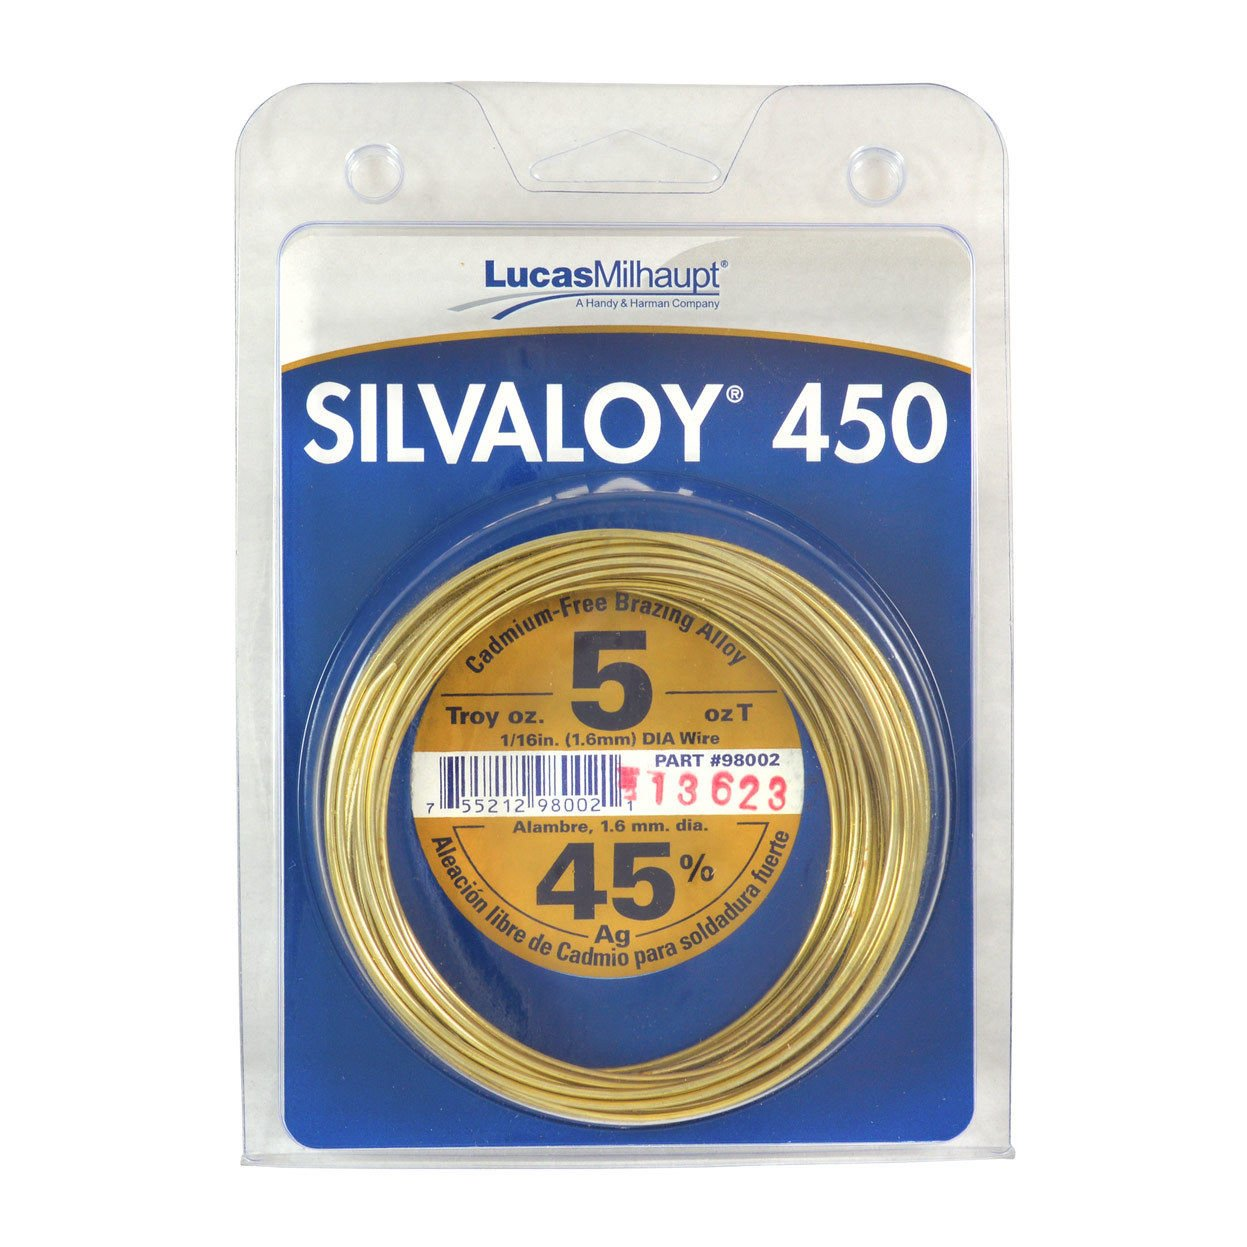 Lucas Milhaupt Silvaloy 450 45% Silver Solder Brazing Alloy 5 oz, 98002